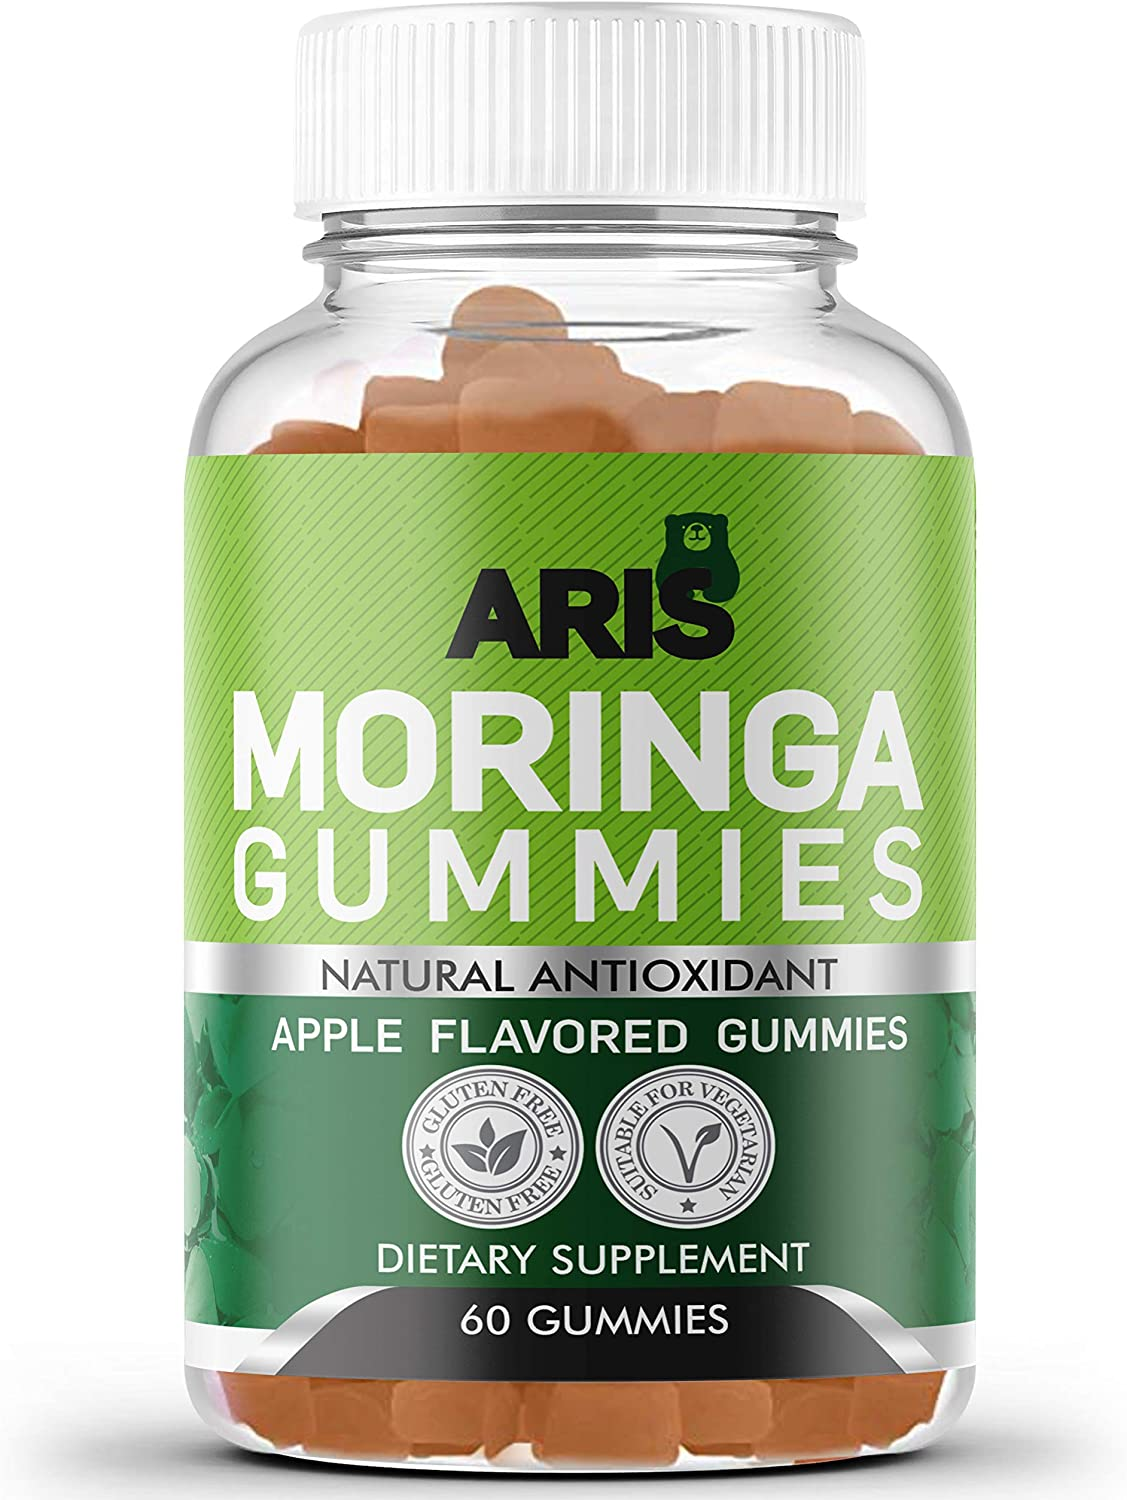 Aris Moringa Gummies from Miracle Tree Leaf, Rich in Vitamins and Antioxidants. This Superfood Supplement is a great Sourse of Nutrients and Minerals, 60 Chewable